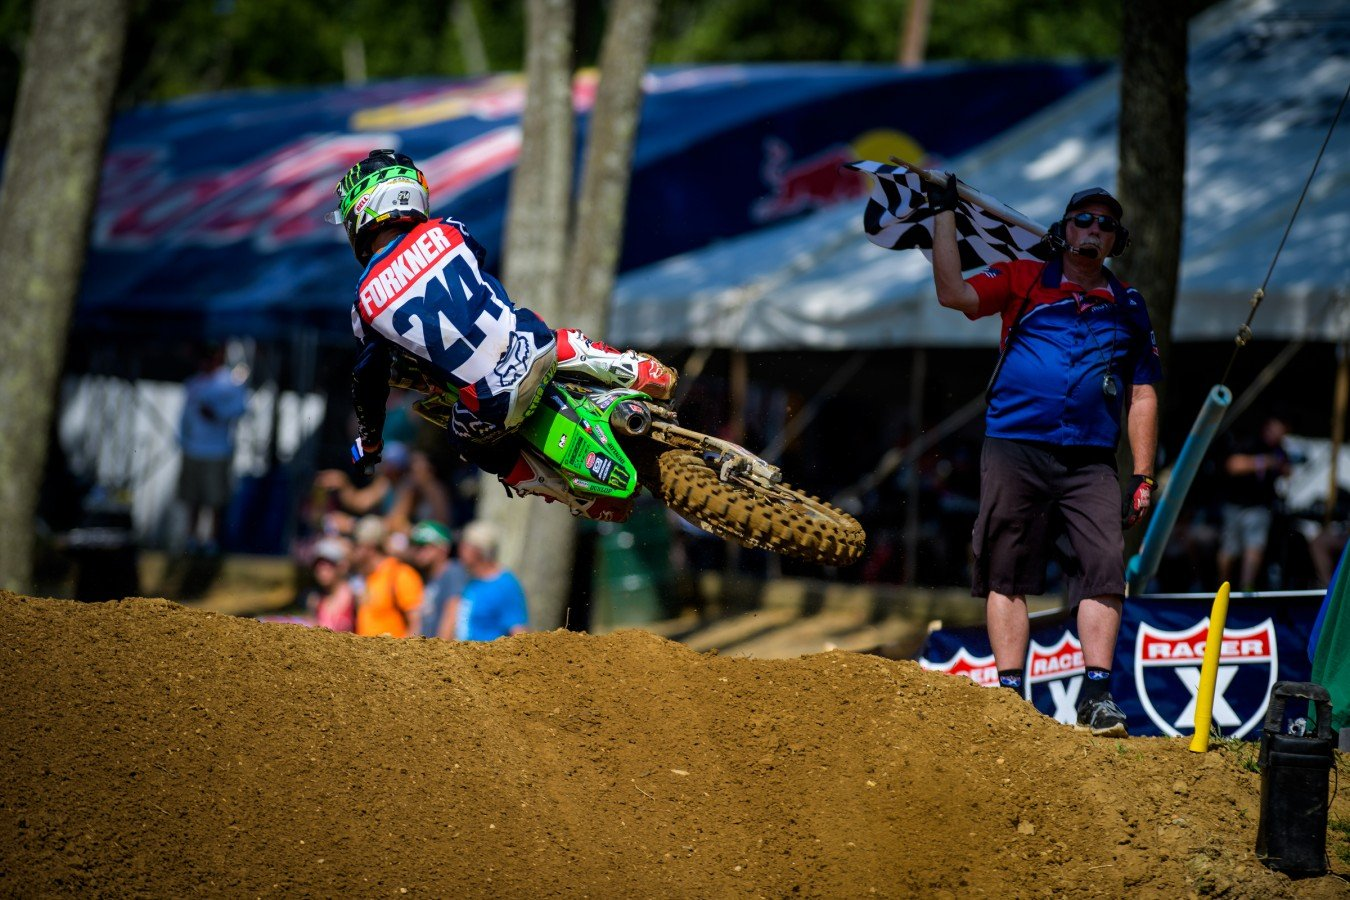 Austin Forkner during the 2016 Pro MX Nationals in Budds Creek Raceway - Mechanicsville, MD